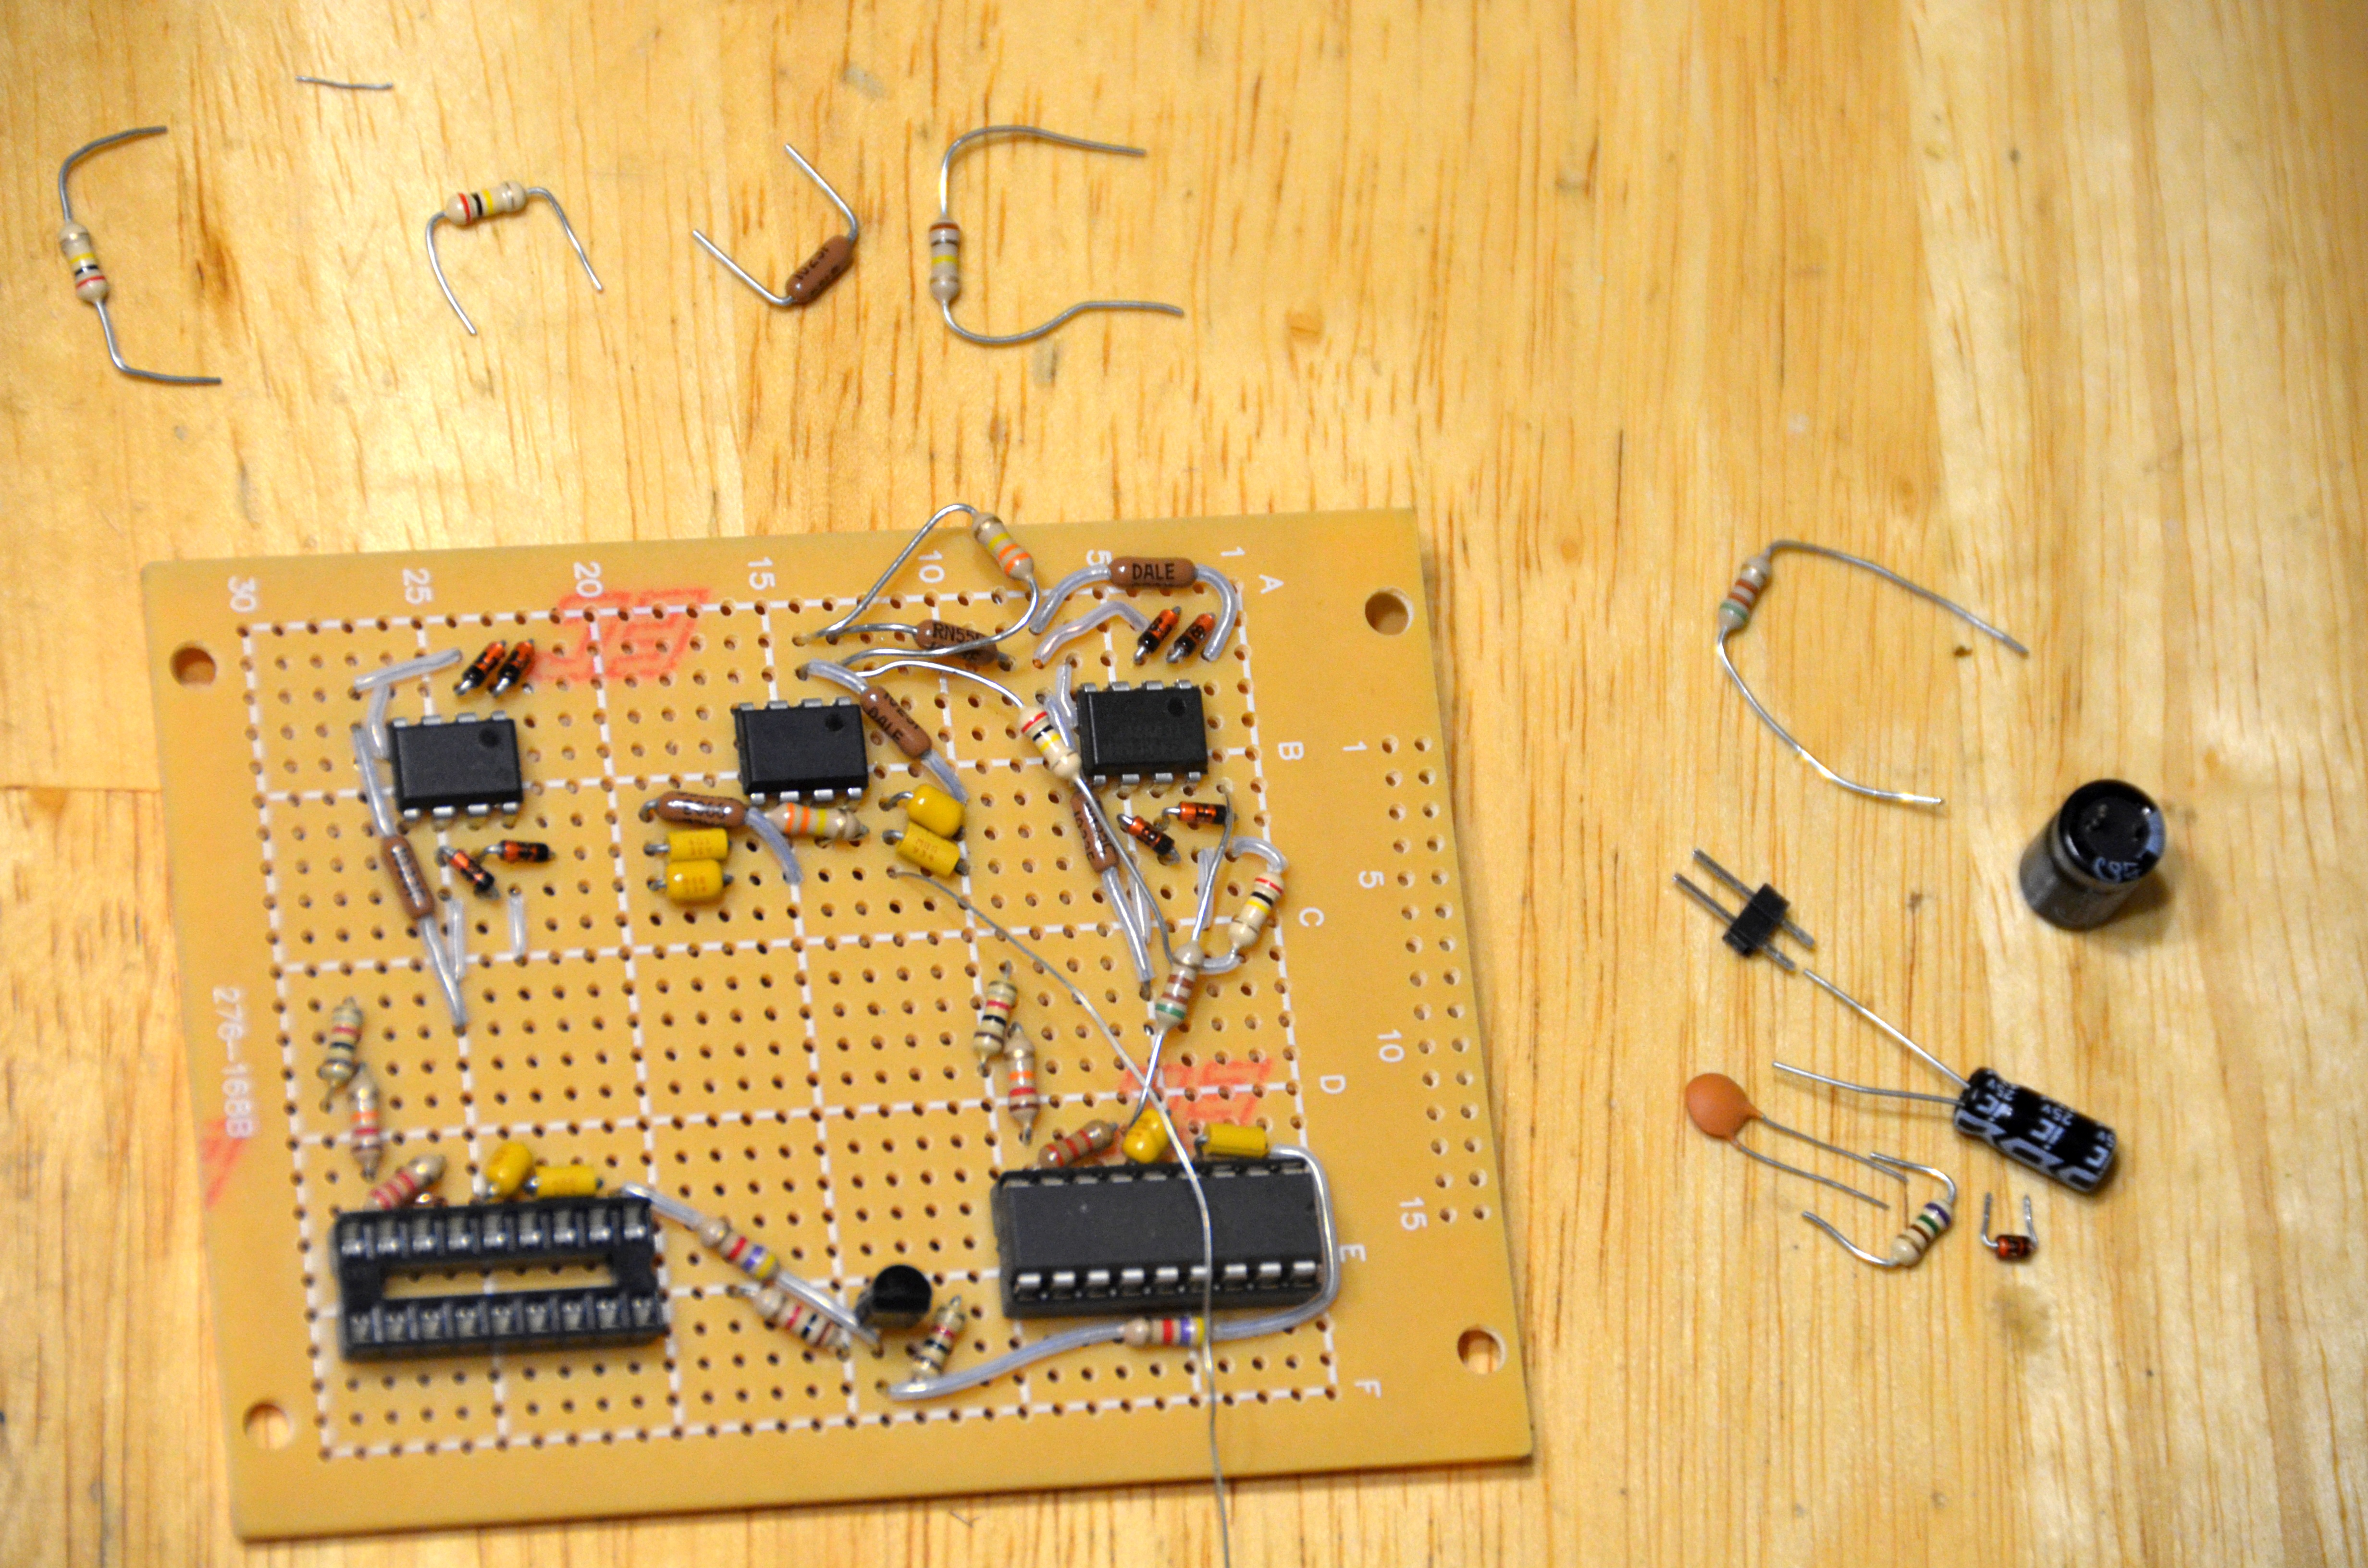 M70 Led Meter Mod Page 2 Restorations Customizations Boomboxery Project Cell Phone Detector Circuit On Breadboard Youtube 16096143350 7944a75087 O